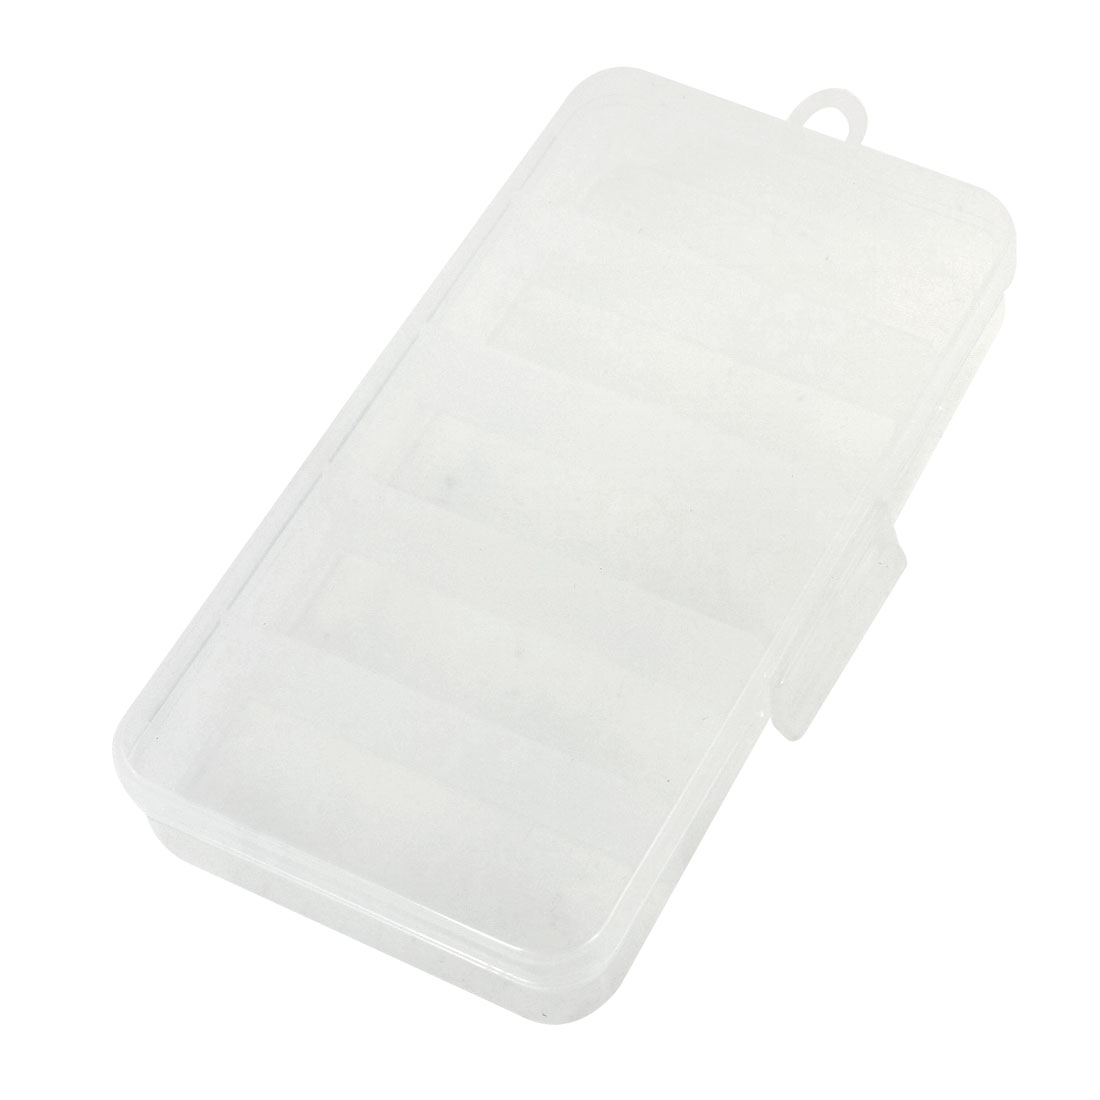 Plastic Fishing Trackle Storage Case Box 5-Compartment Clear White